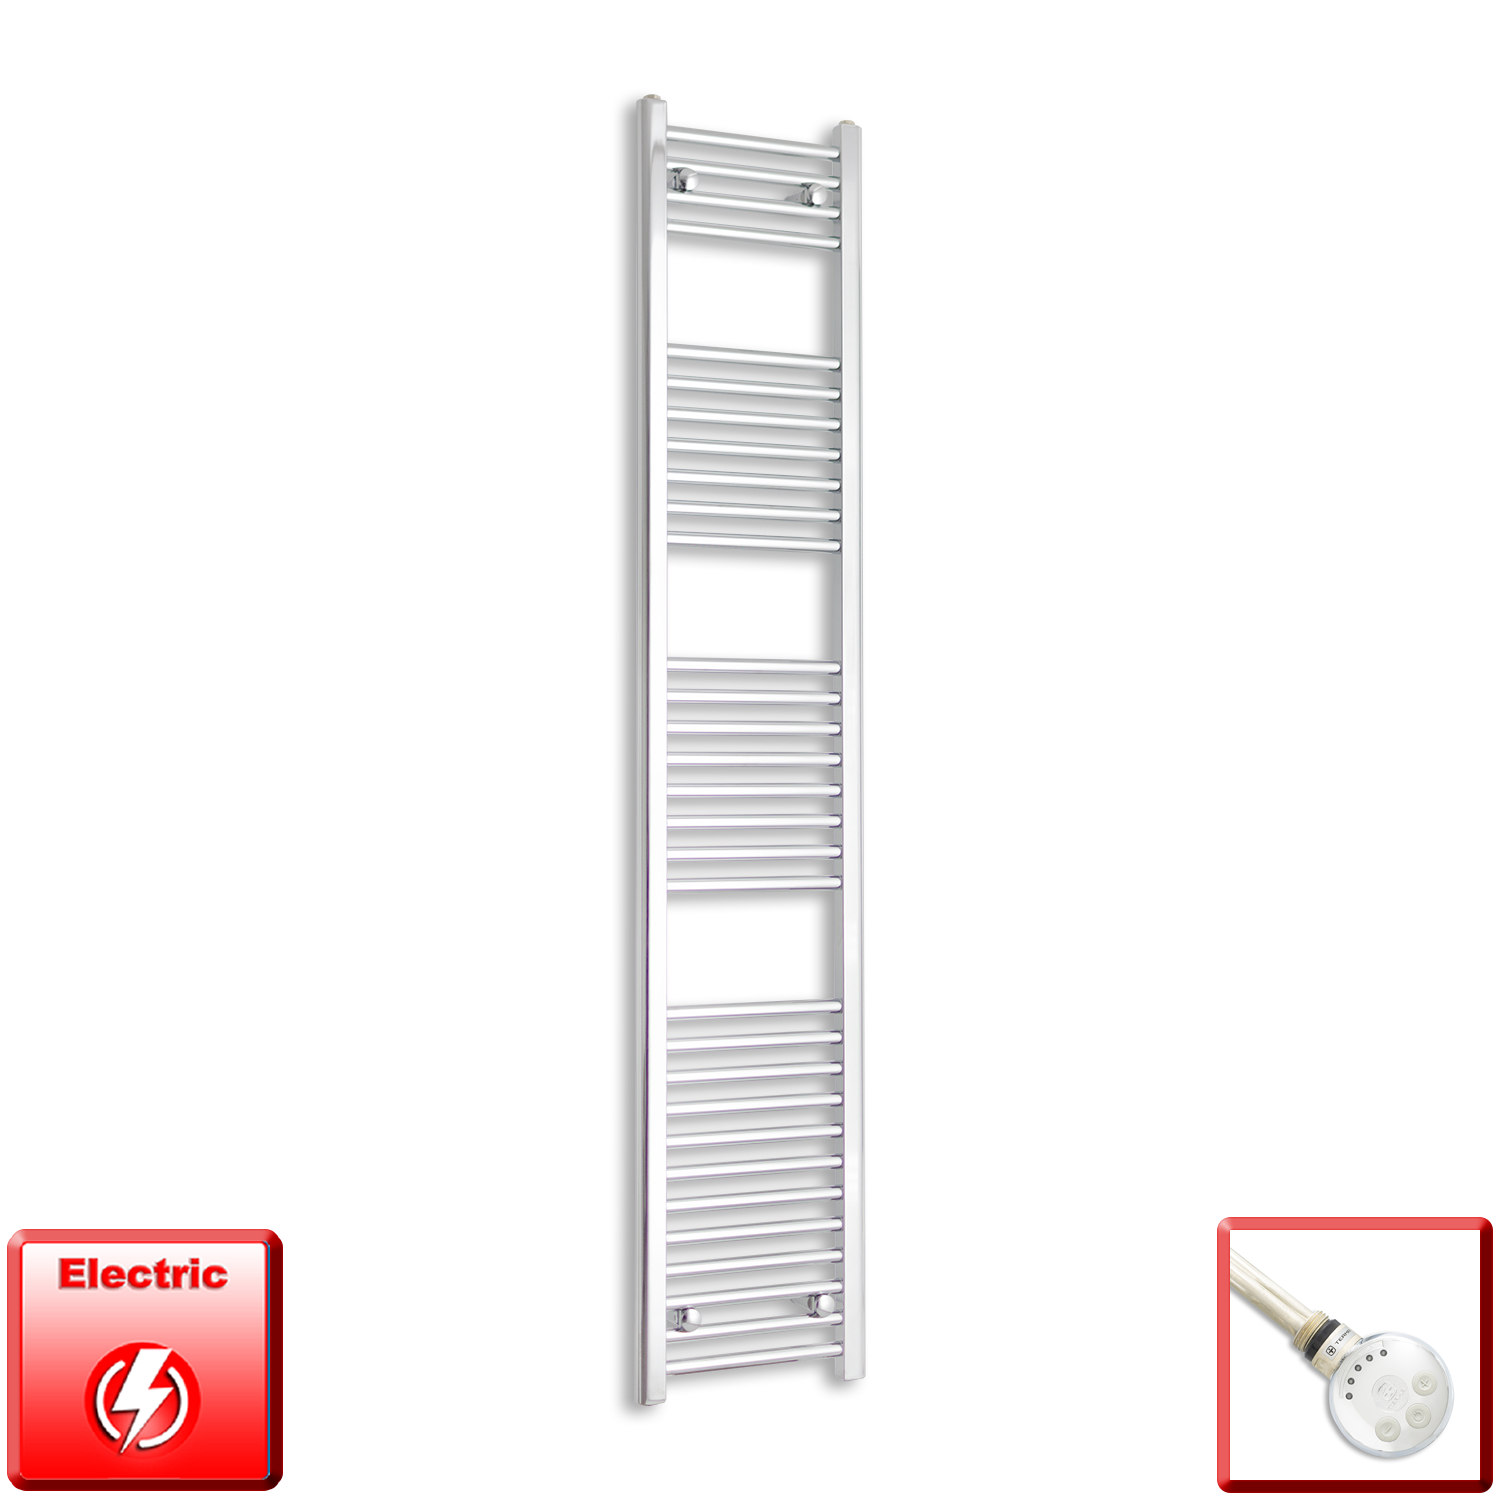 350mm Wide 1800mm High Pre-Filled Chrome Electric Towel Rail Radiator With Thermostatic MEG Element